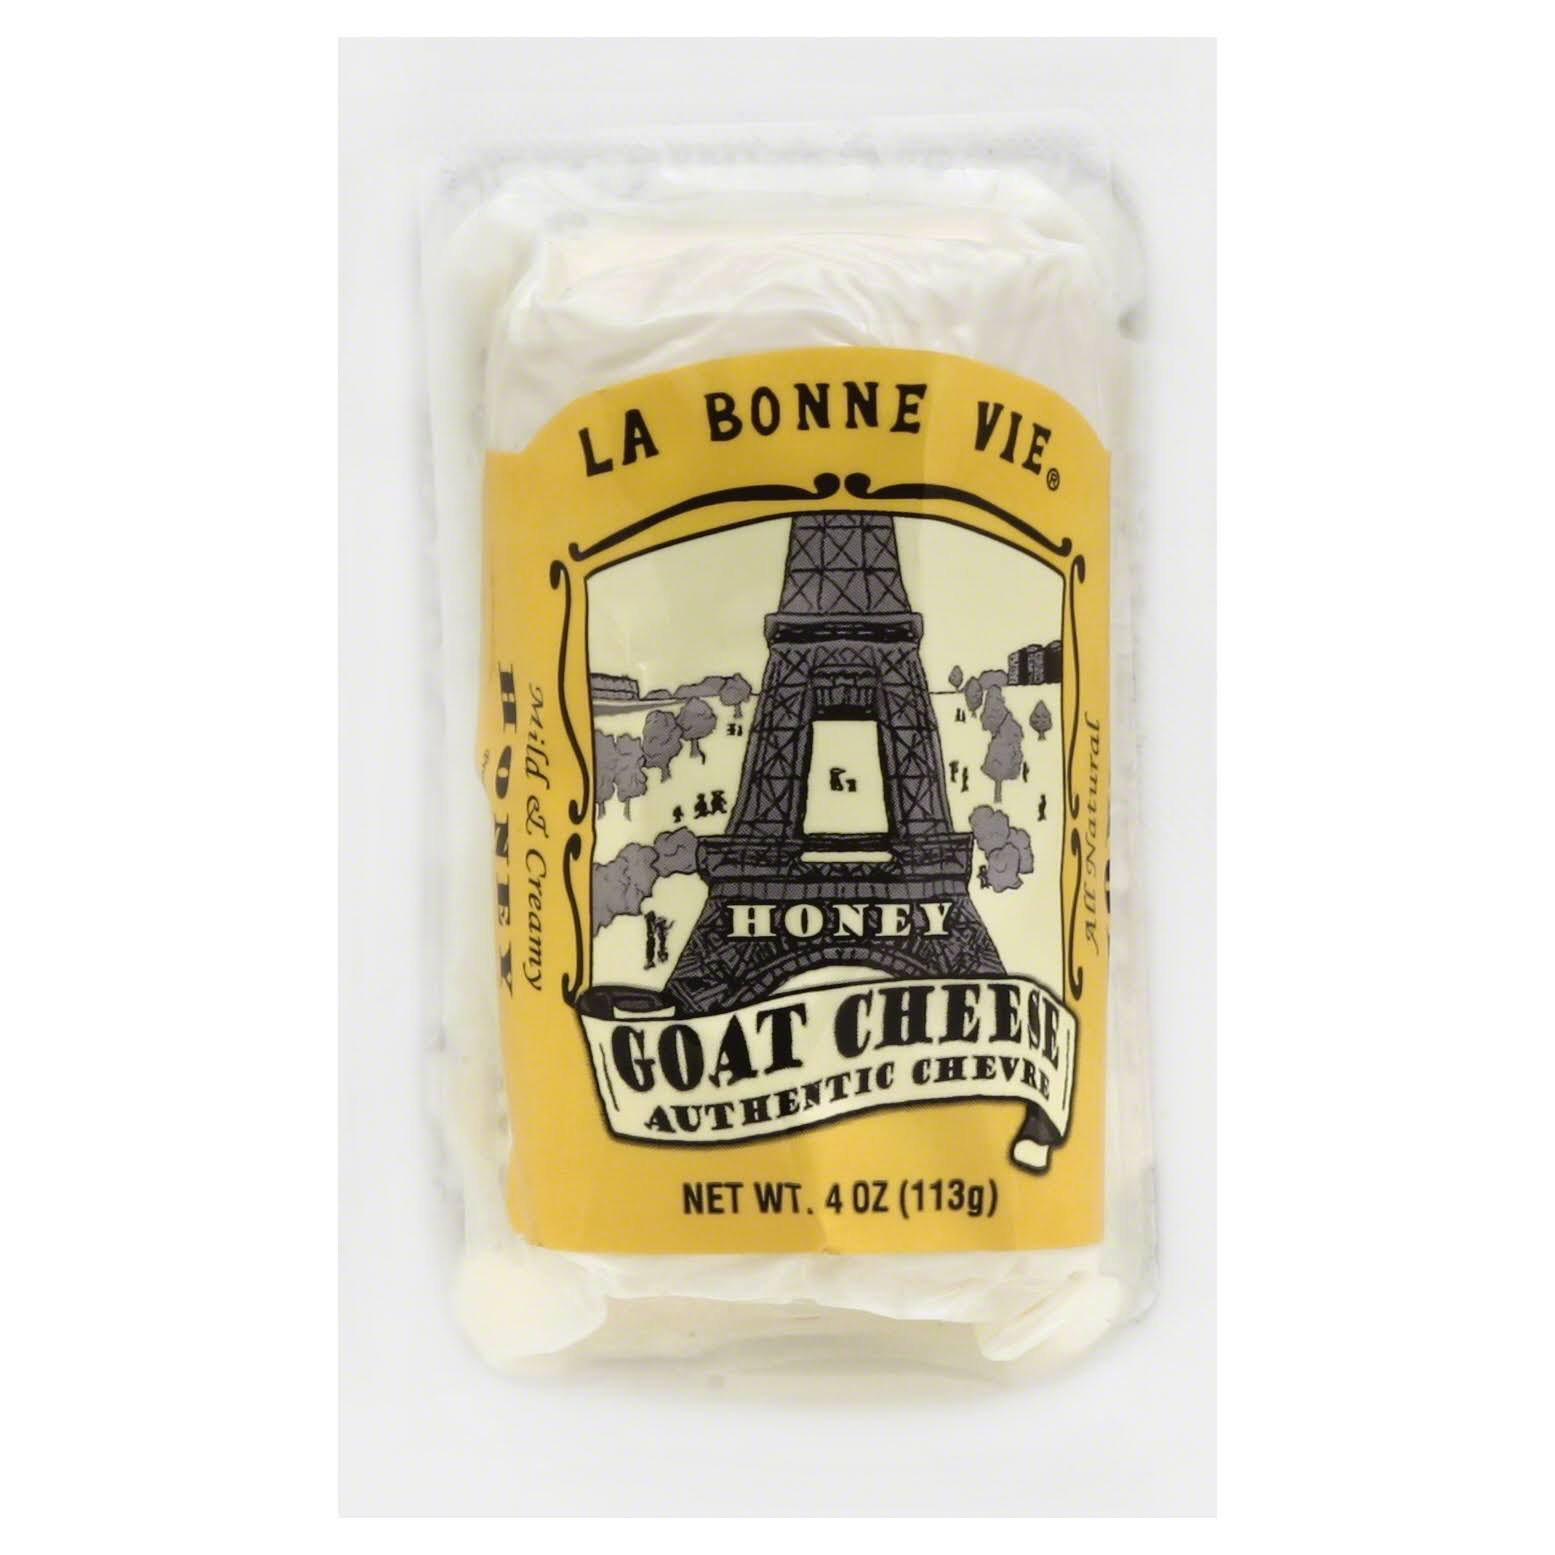 La Bonne Vie Cheese, Goat, Honey - 4 oz